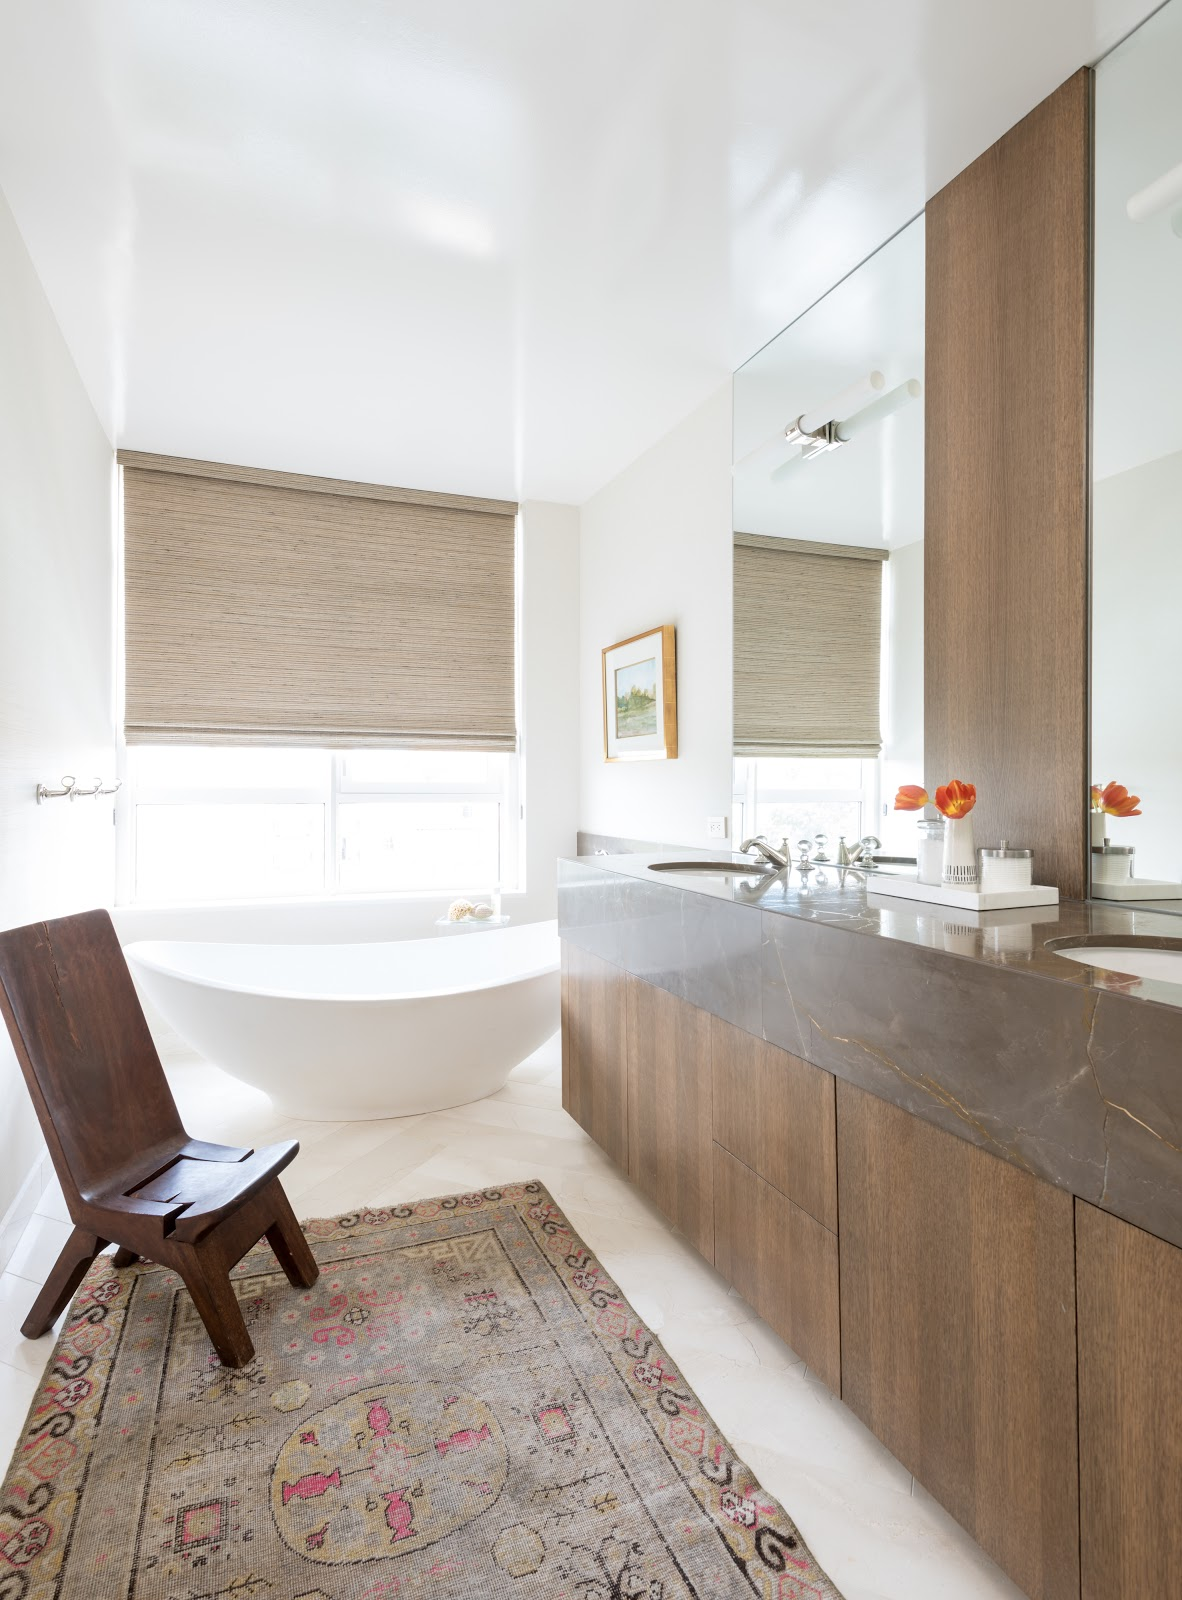 collected high-rise minimalist bathroom with wood cabinetry and freestanding tub - laura u interior design